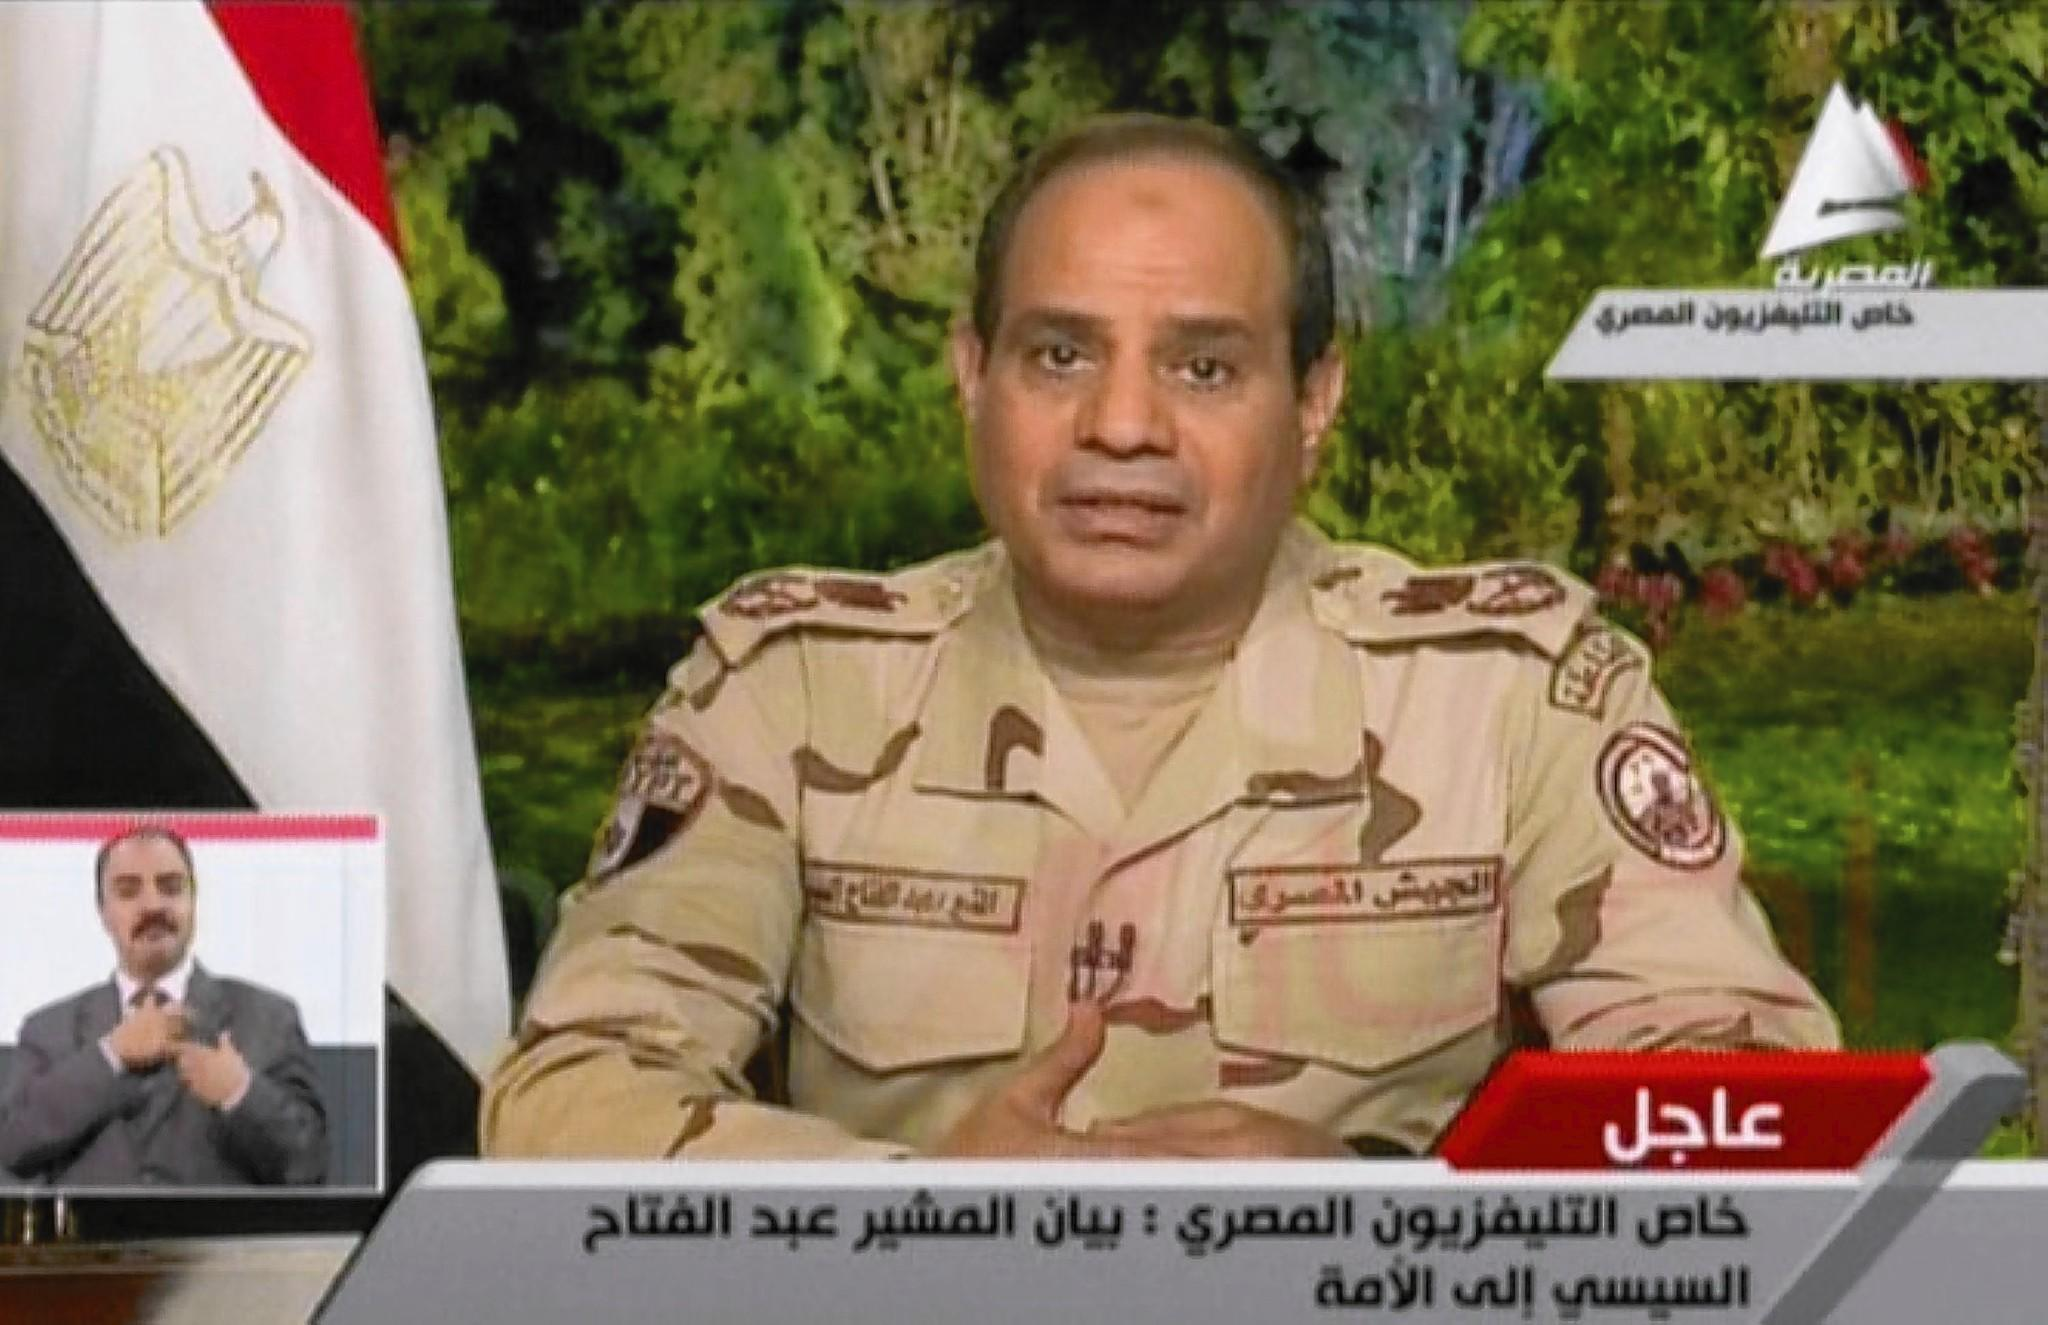 In Cairo, Abdel Fattah Sisi announces his resignation from his military position so he can run in the upcoming Egyptian presidential election, in an image taken from television.